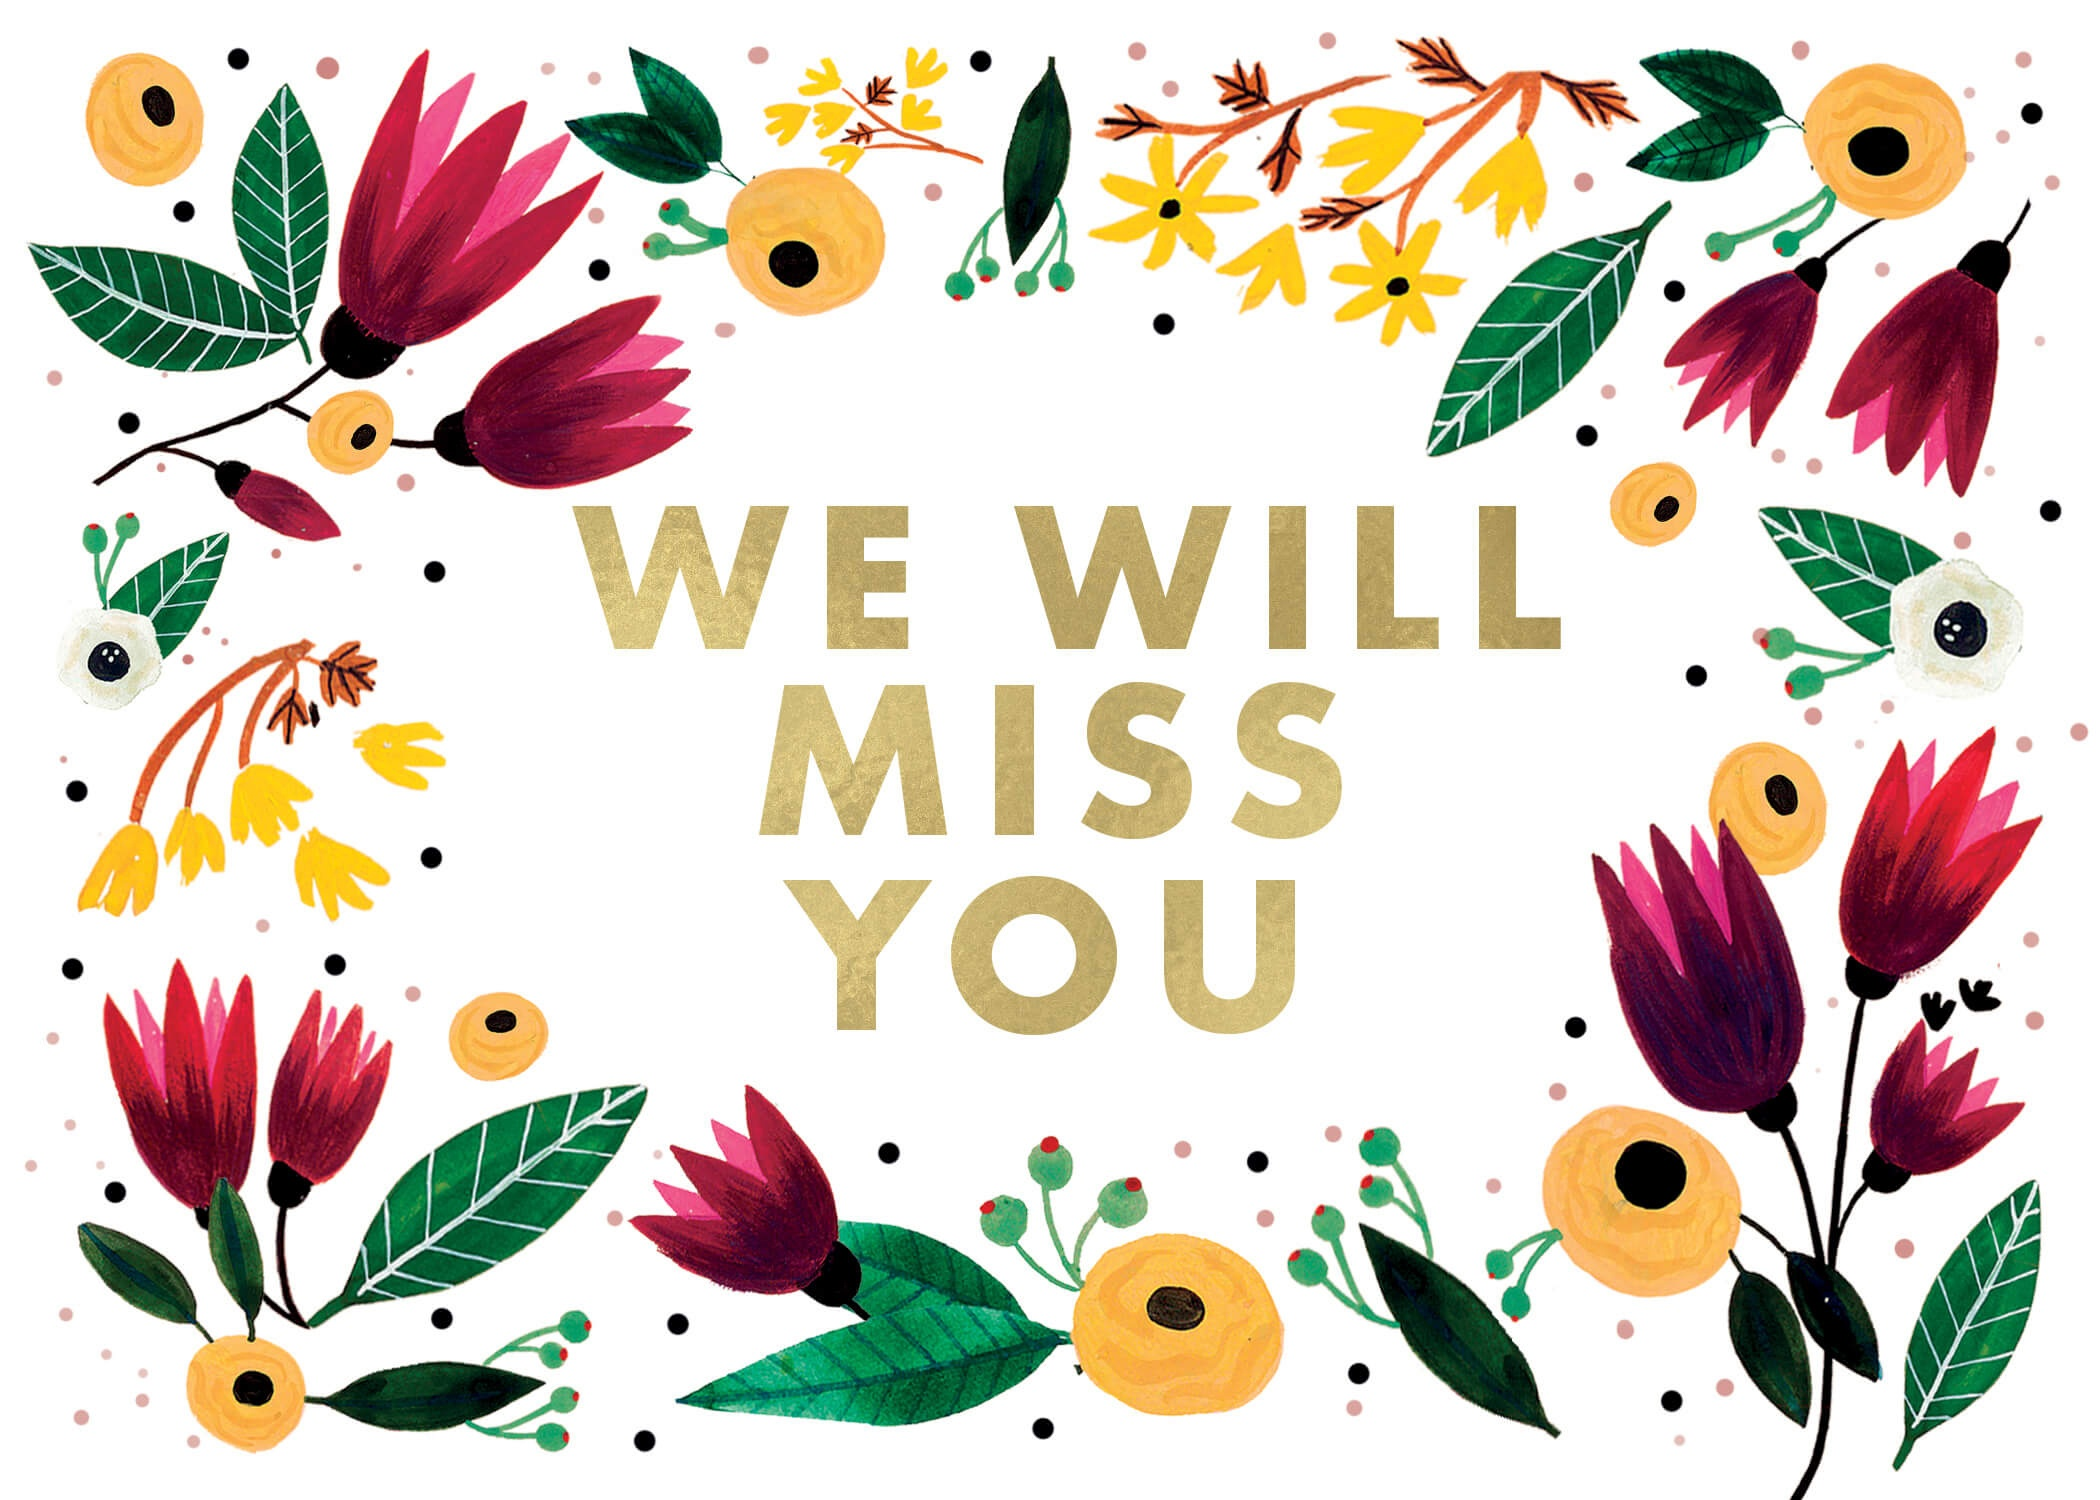 We Will Miss You - Miss You Card (Free) | Greetings Island - Free Printable We Will Miss You Greeting Cards